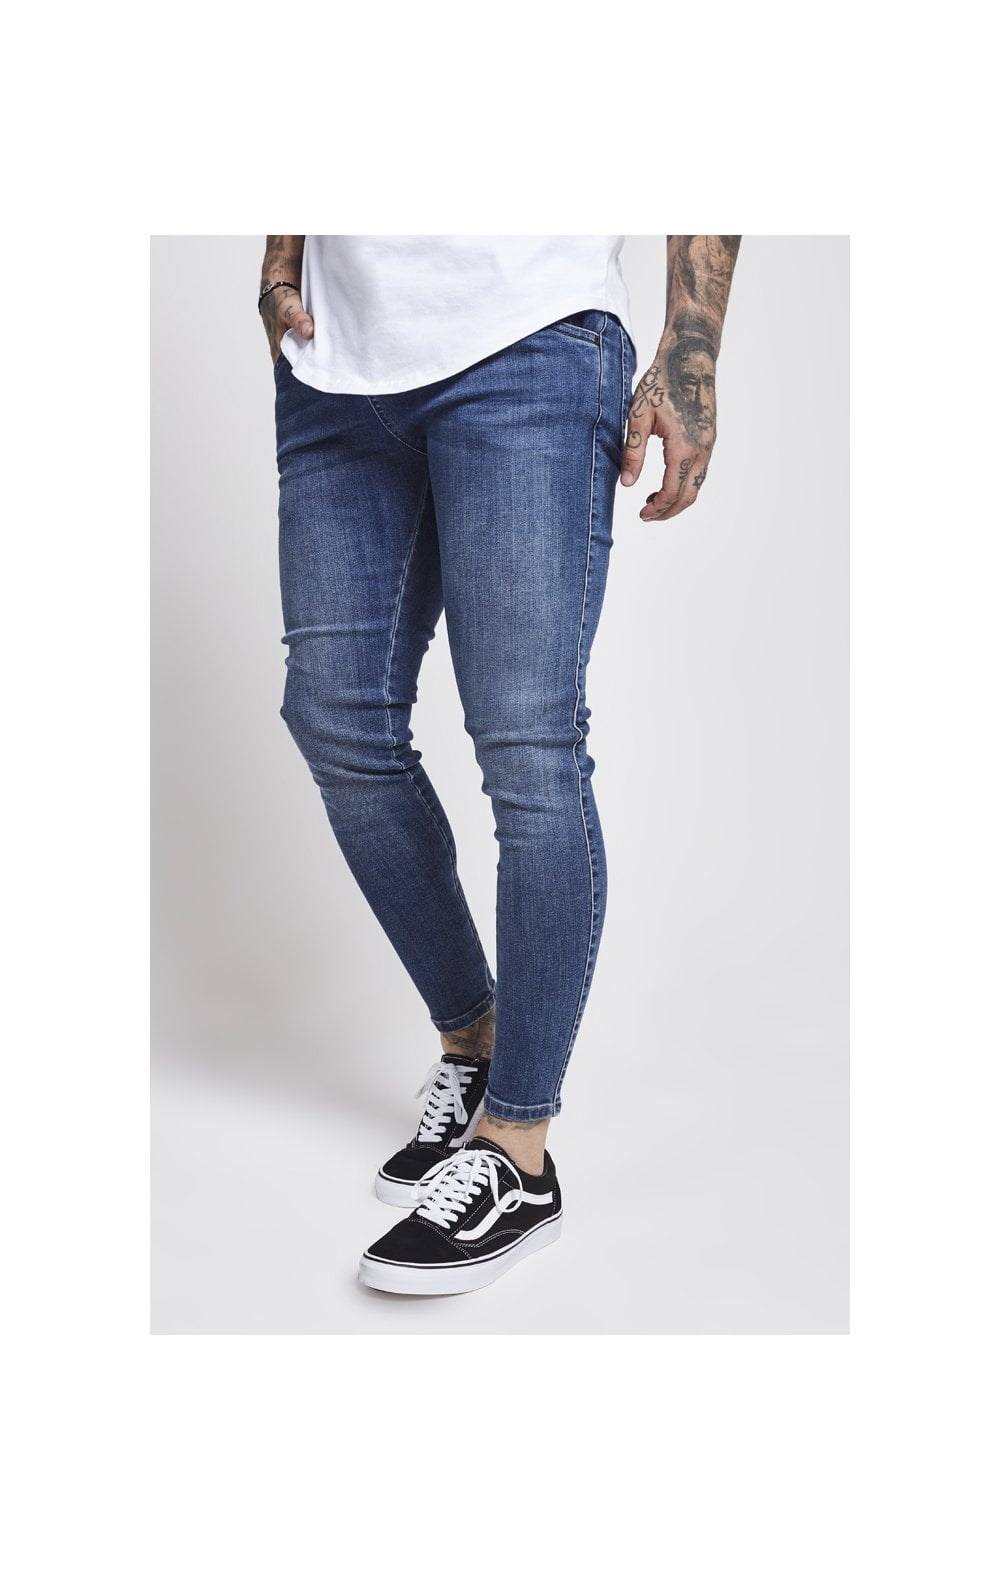 Load image into Gallery viewer, SikSilk Drop Crotch Denims – Midstone (1)